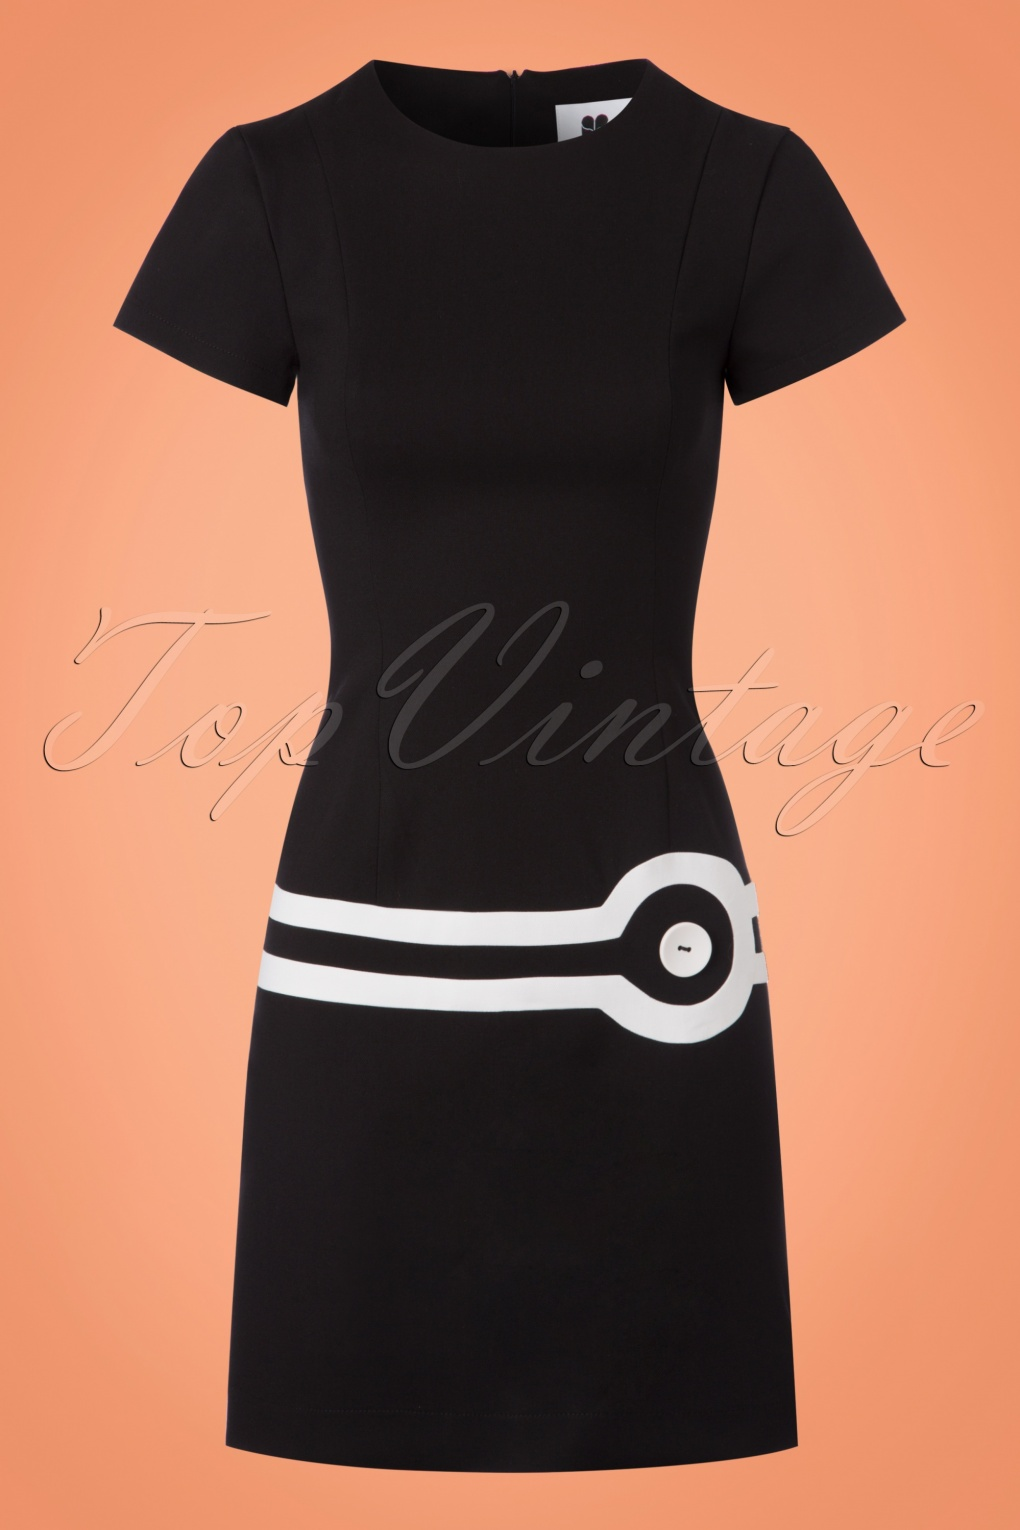 1960s – 70s Dresses- Retro Inspired Fashion 60s Circle  A-Line Dress in Black and White £111.87 AT vintagedancer.com